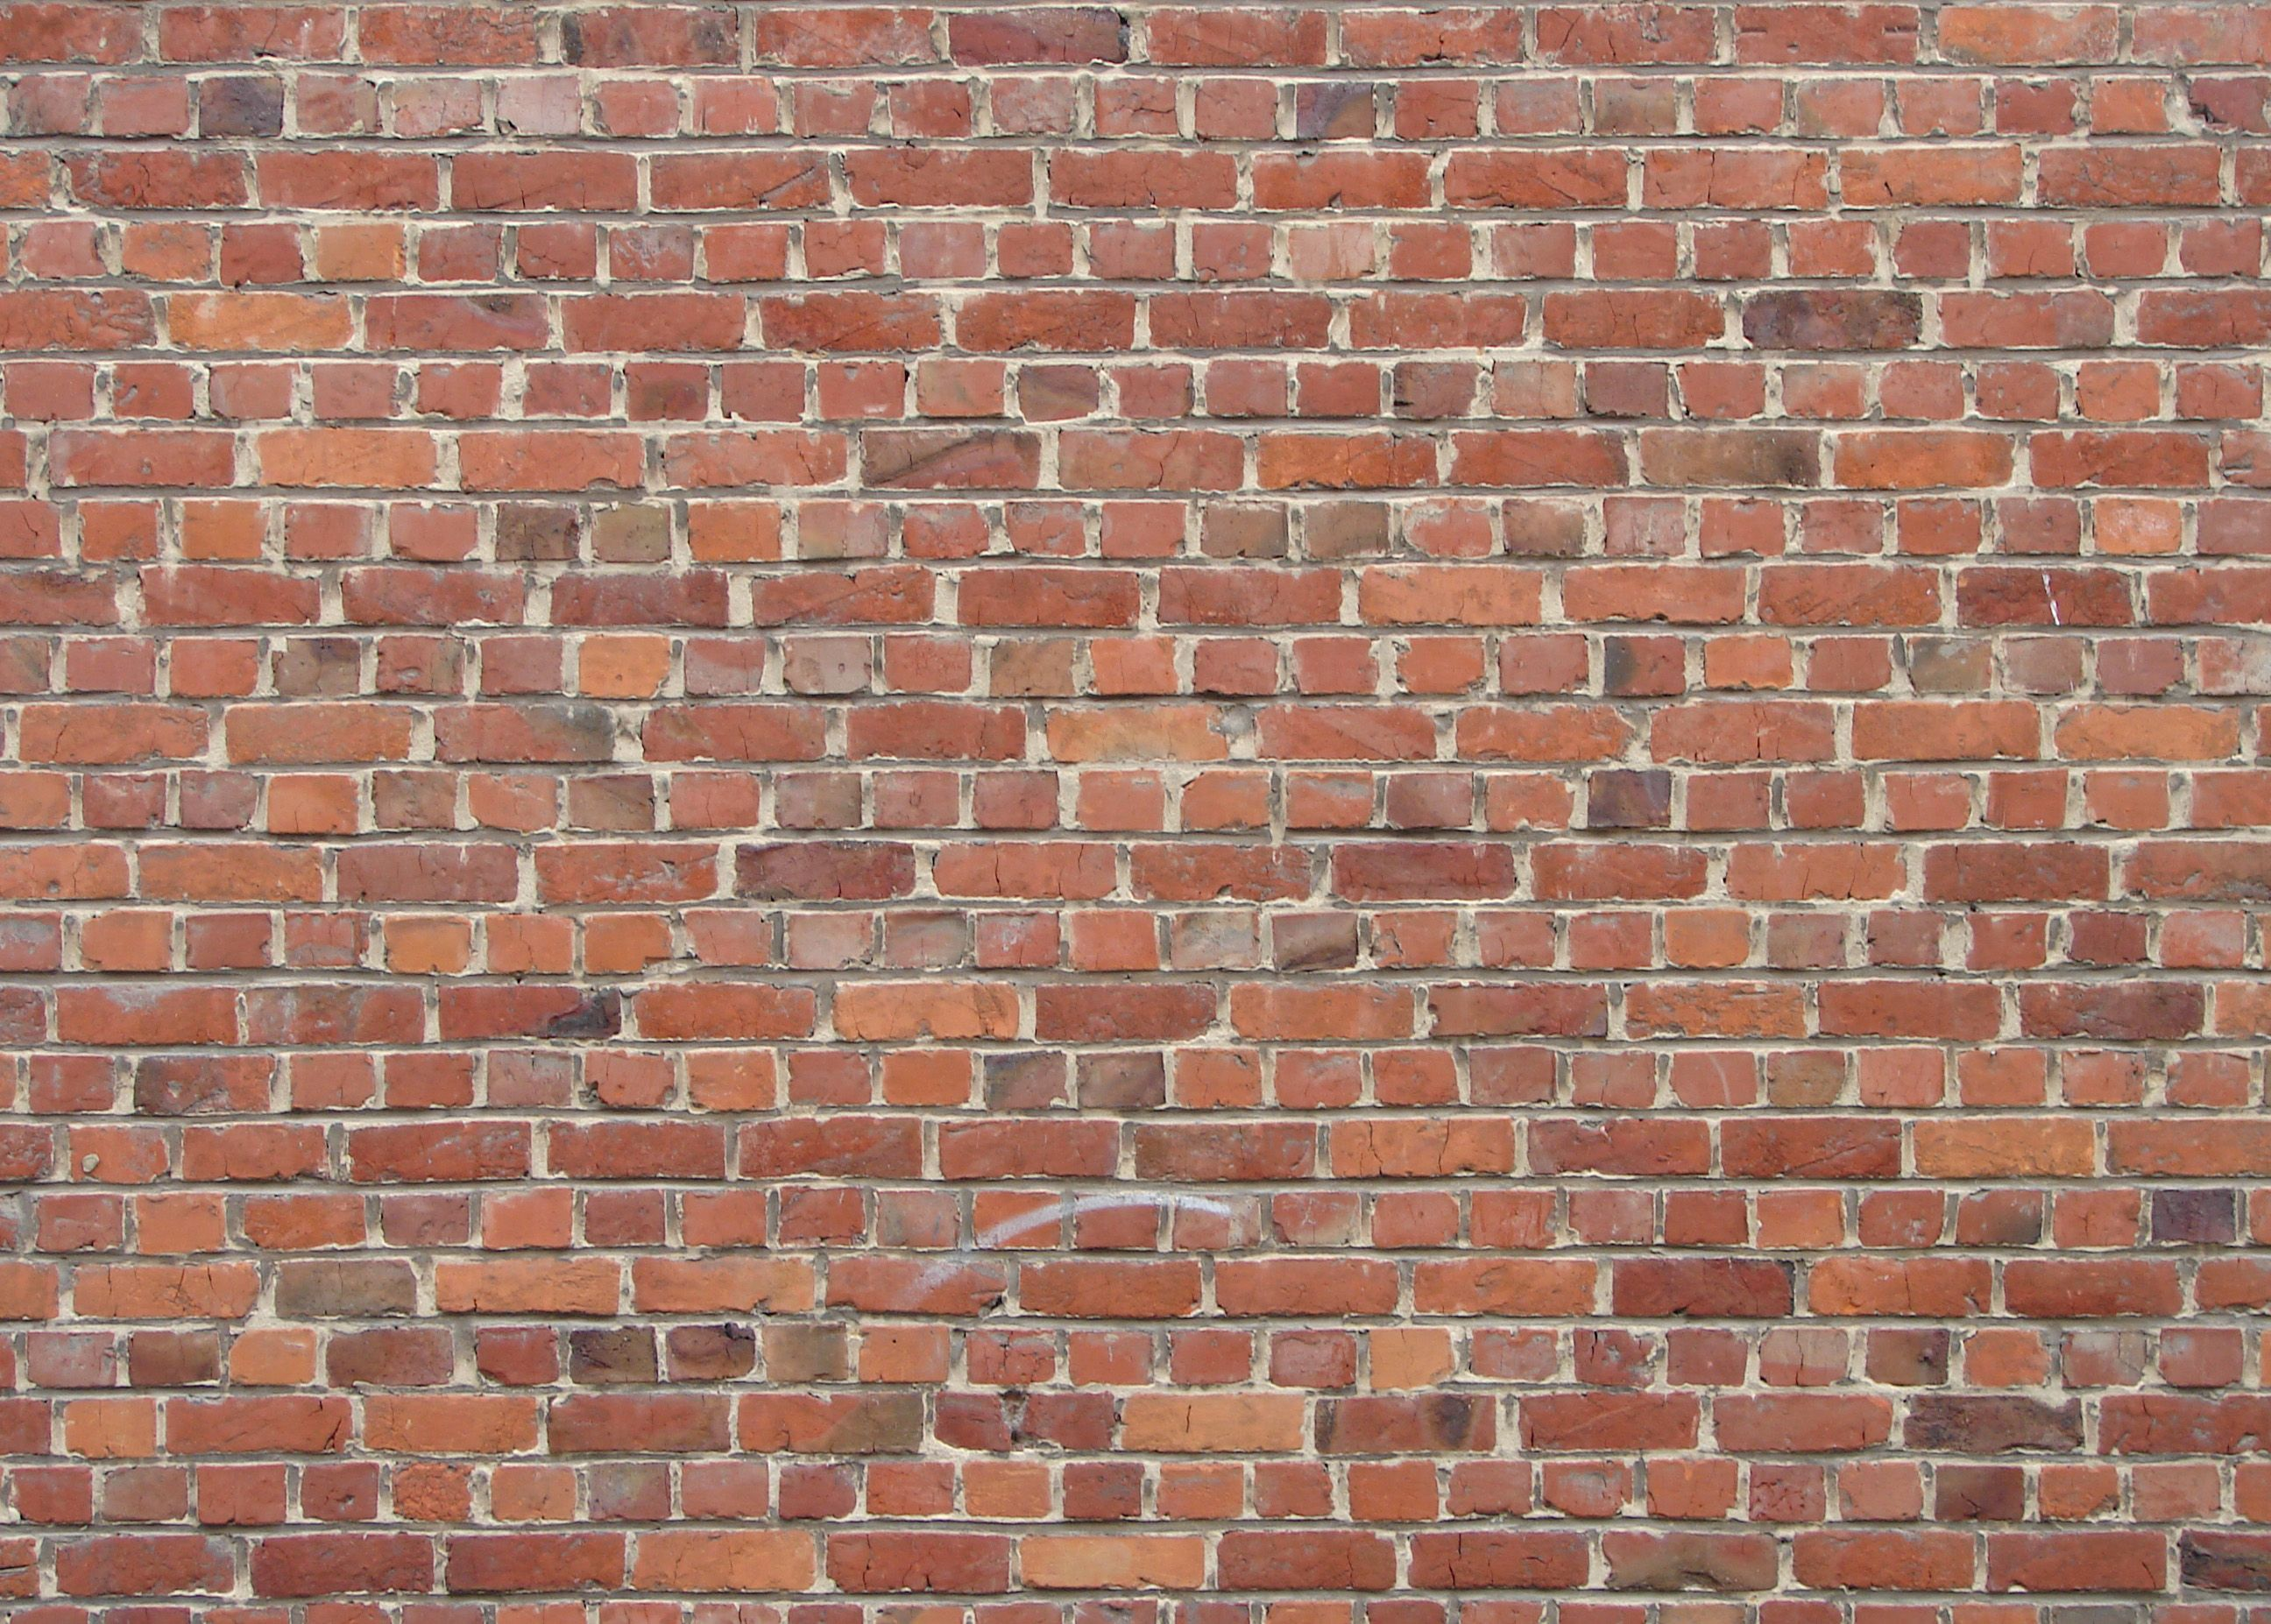 Brick Wall Texture Google Search Fences Project Pinterest Wall Textures Bricks And Walls